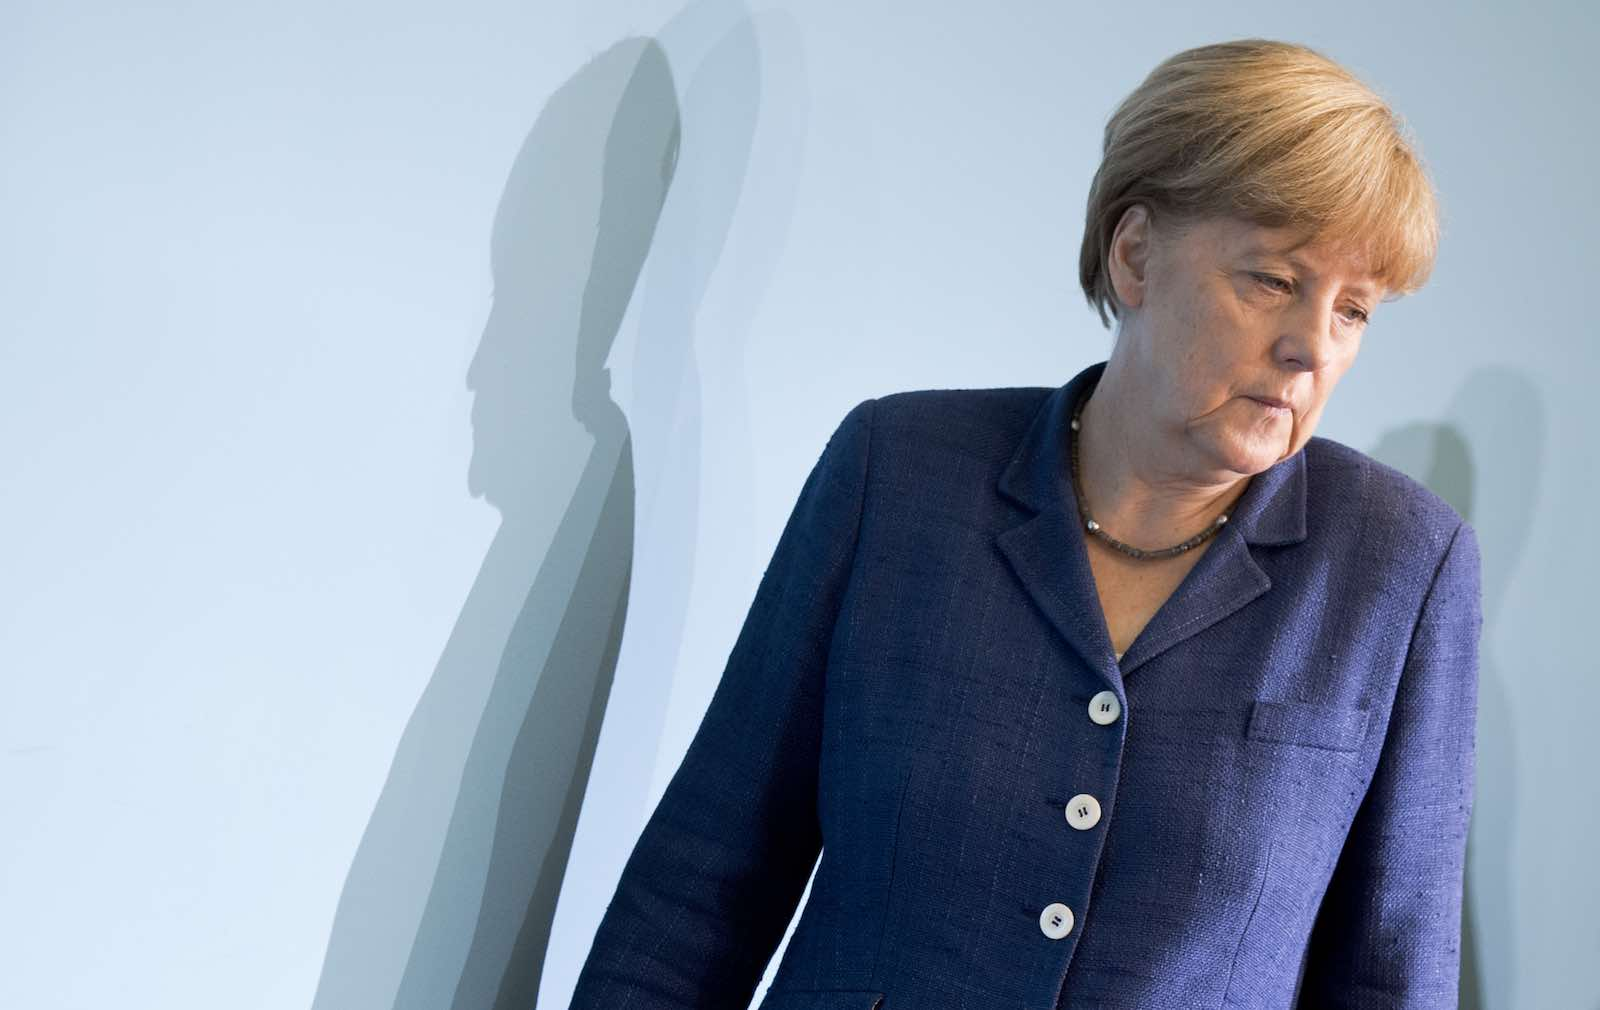 Angela Merkel transformed the tedium of continuity into the essence of genuine leadership (Photo: Michael Gottschalk via Getty)